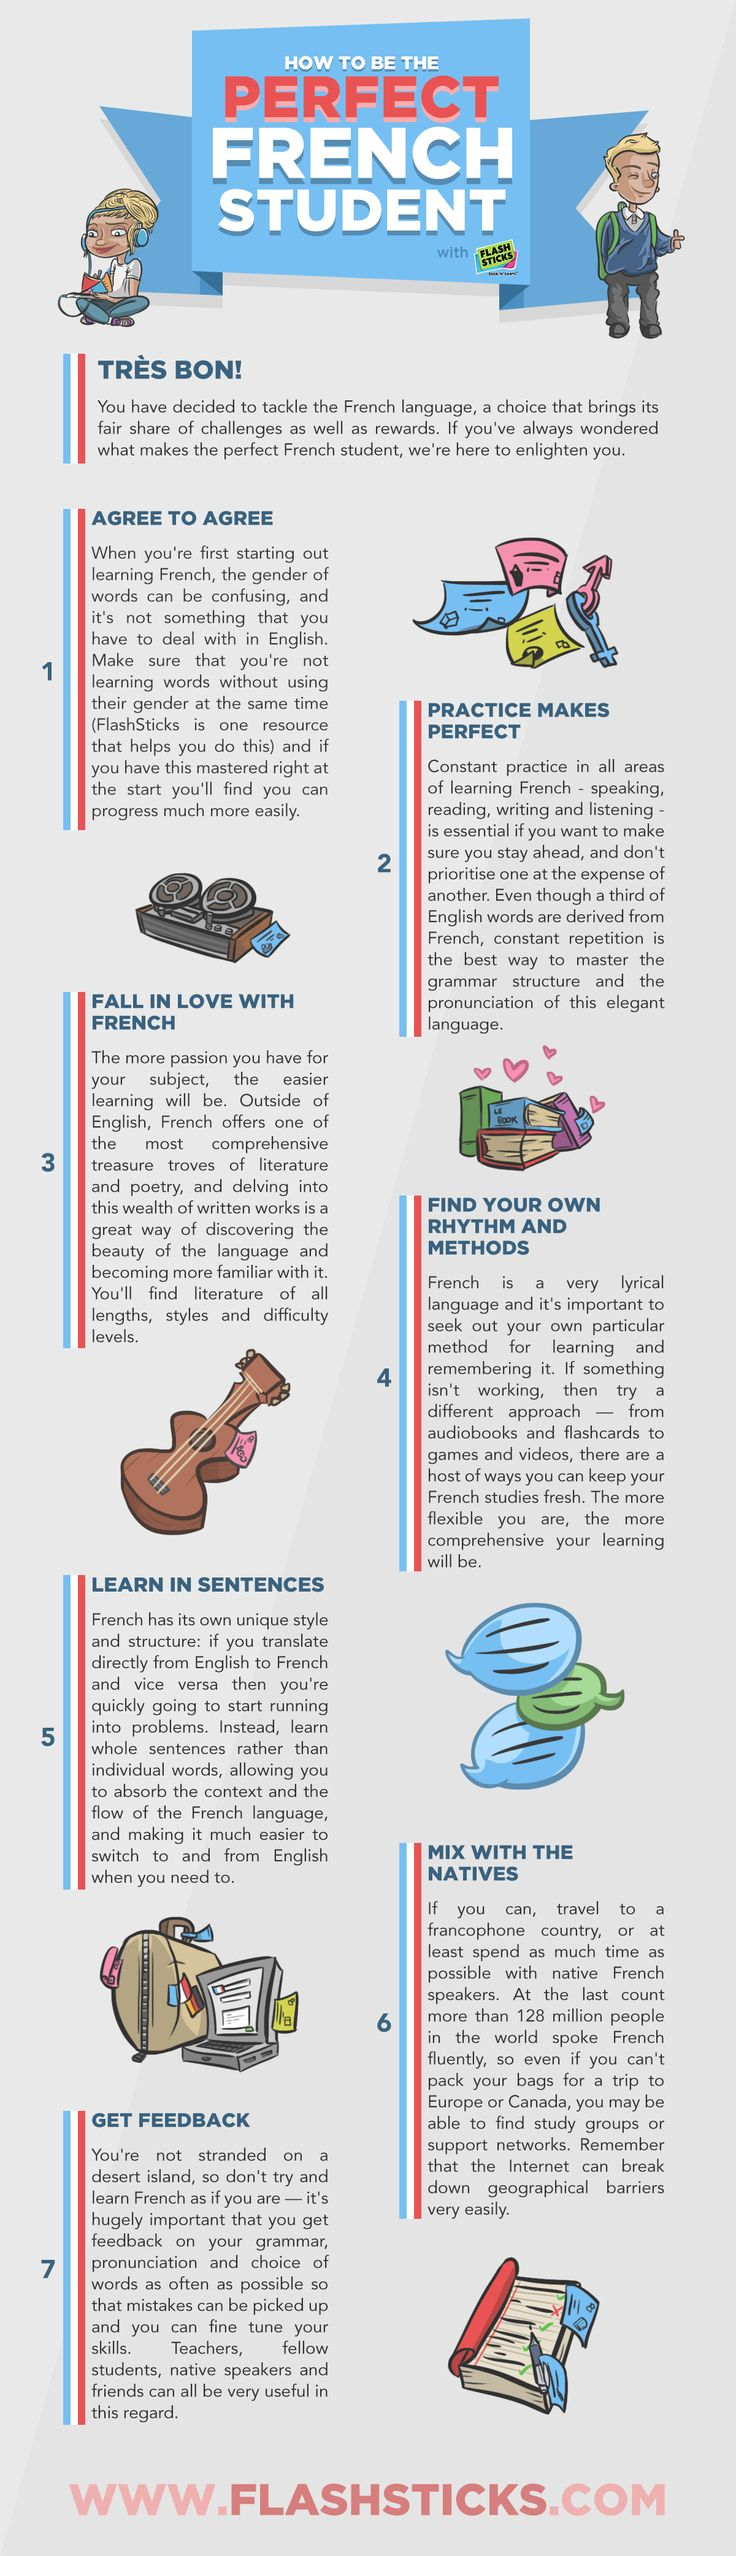 5 Best French Software Programs for Learning ... - FluentU